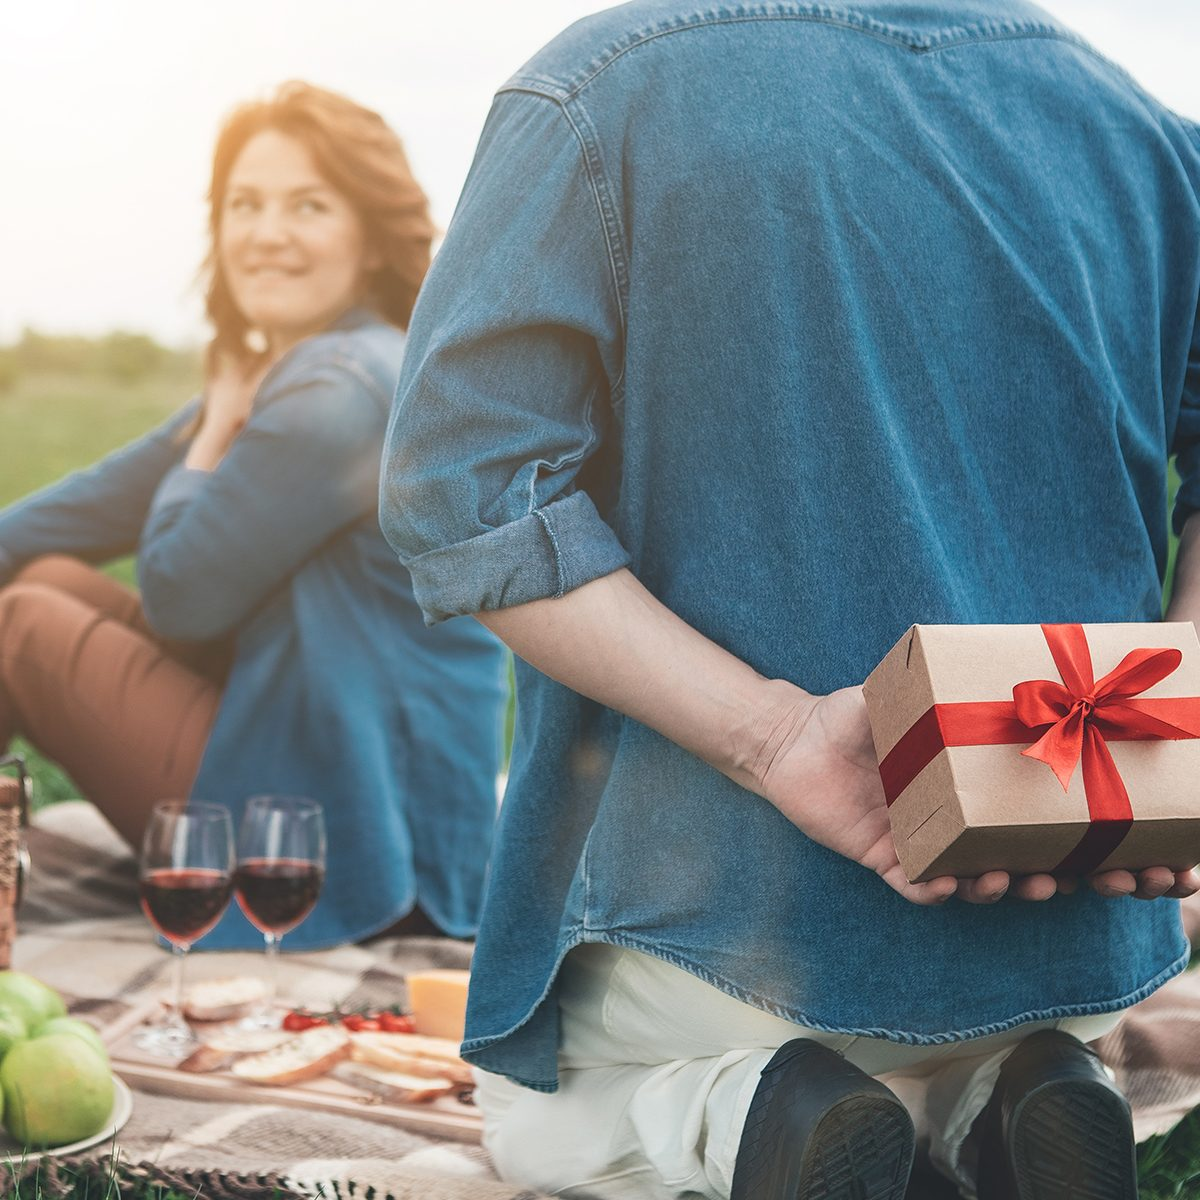 25th Wedding Anniversary Gift Ideas: 10 Thoughtful Ideas For 25th Wedding Anniversary Gifts